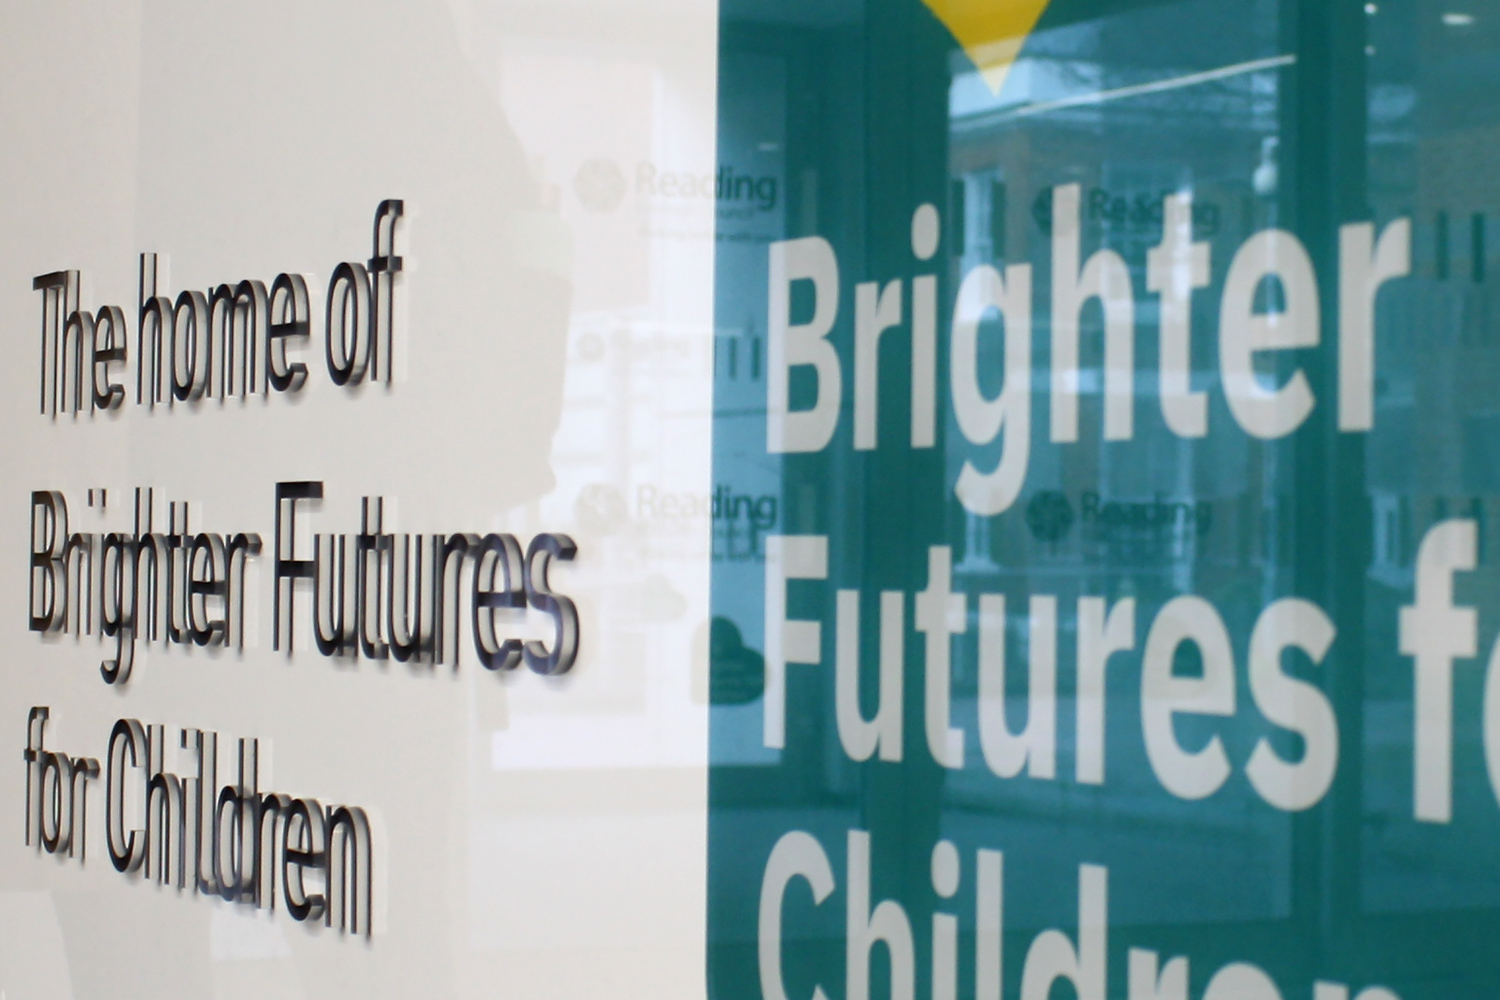 Brighter Futures internal signage